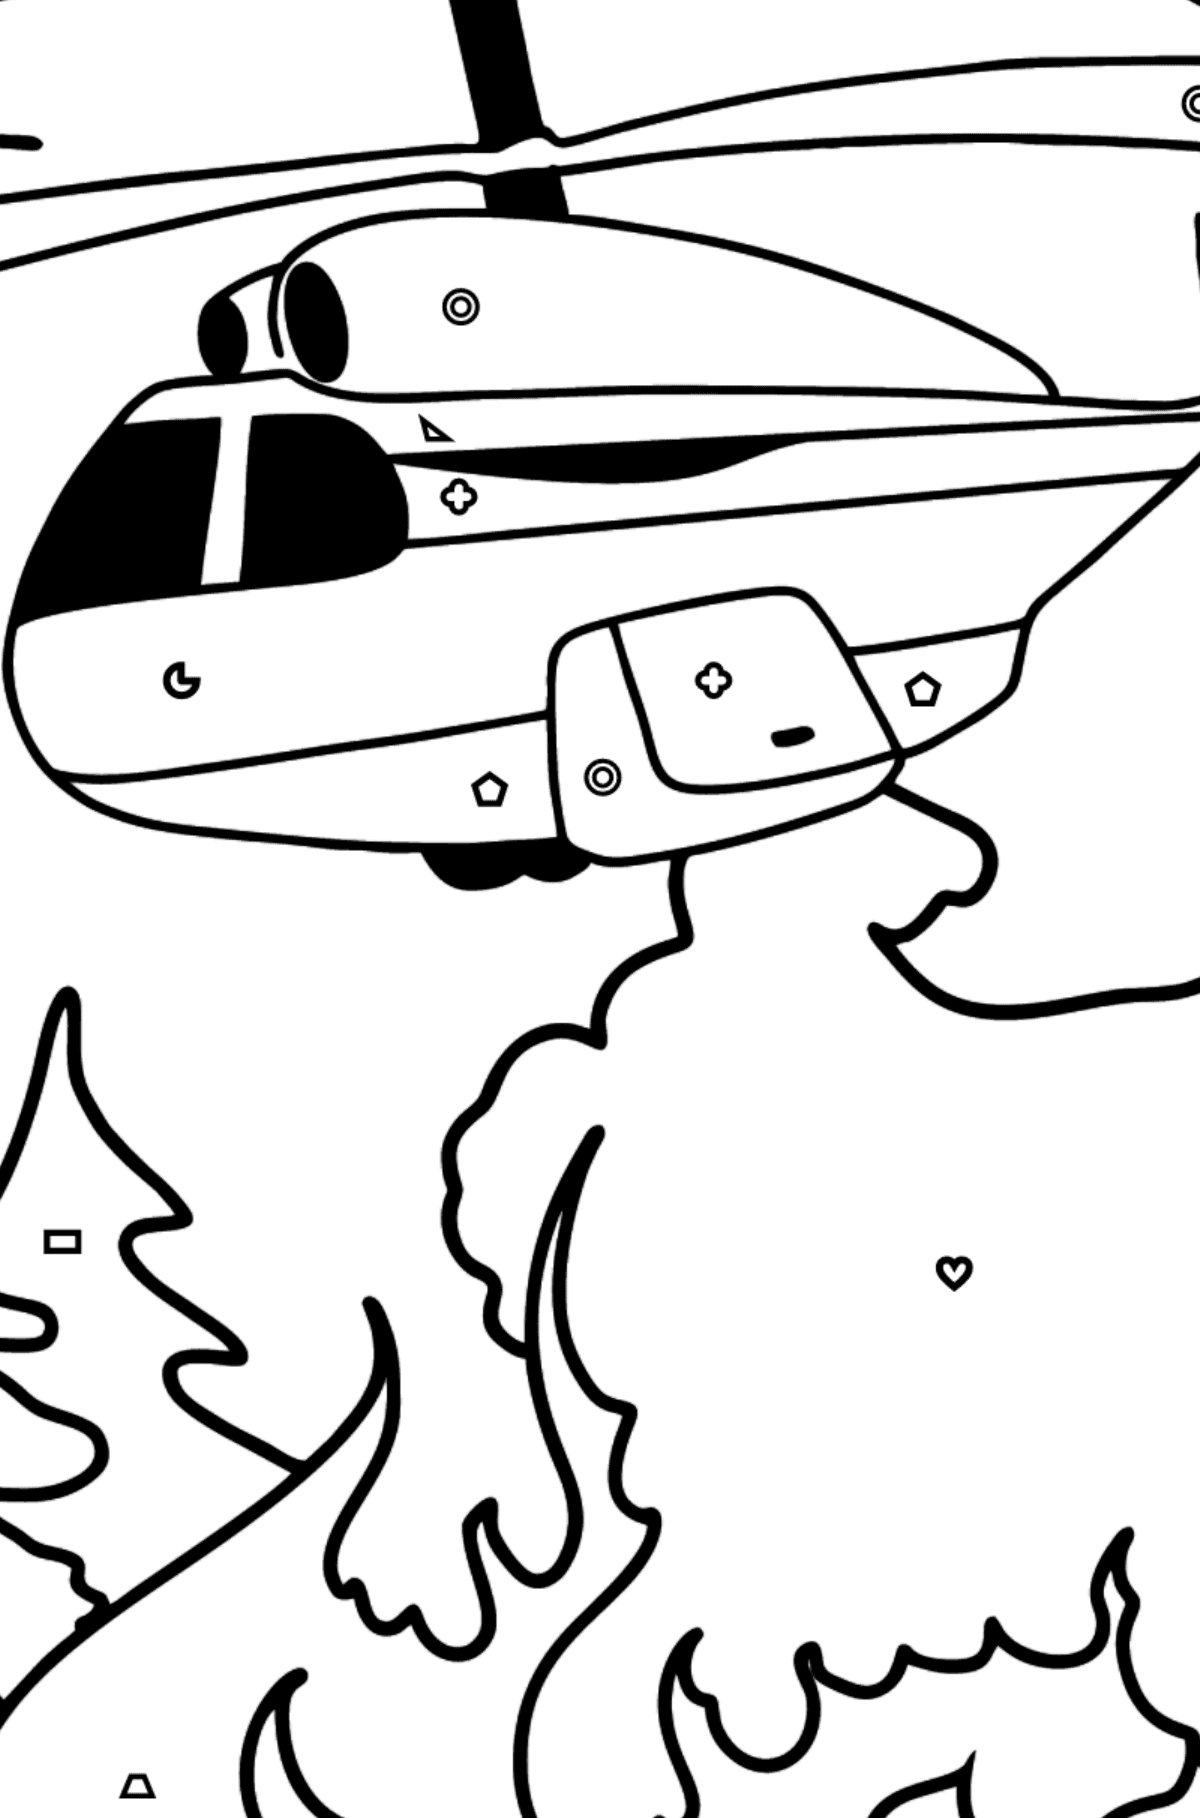 Helicopter Extinguishing Fire coloring page - Coloring by Geometric Shapes for Kids